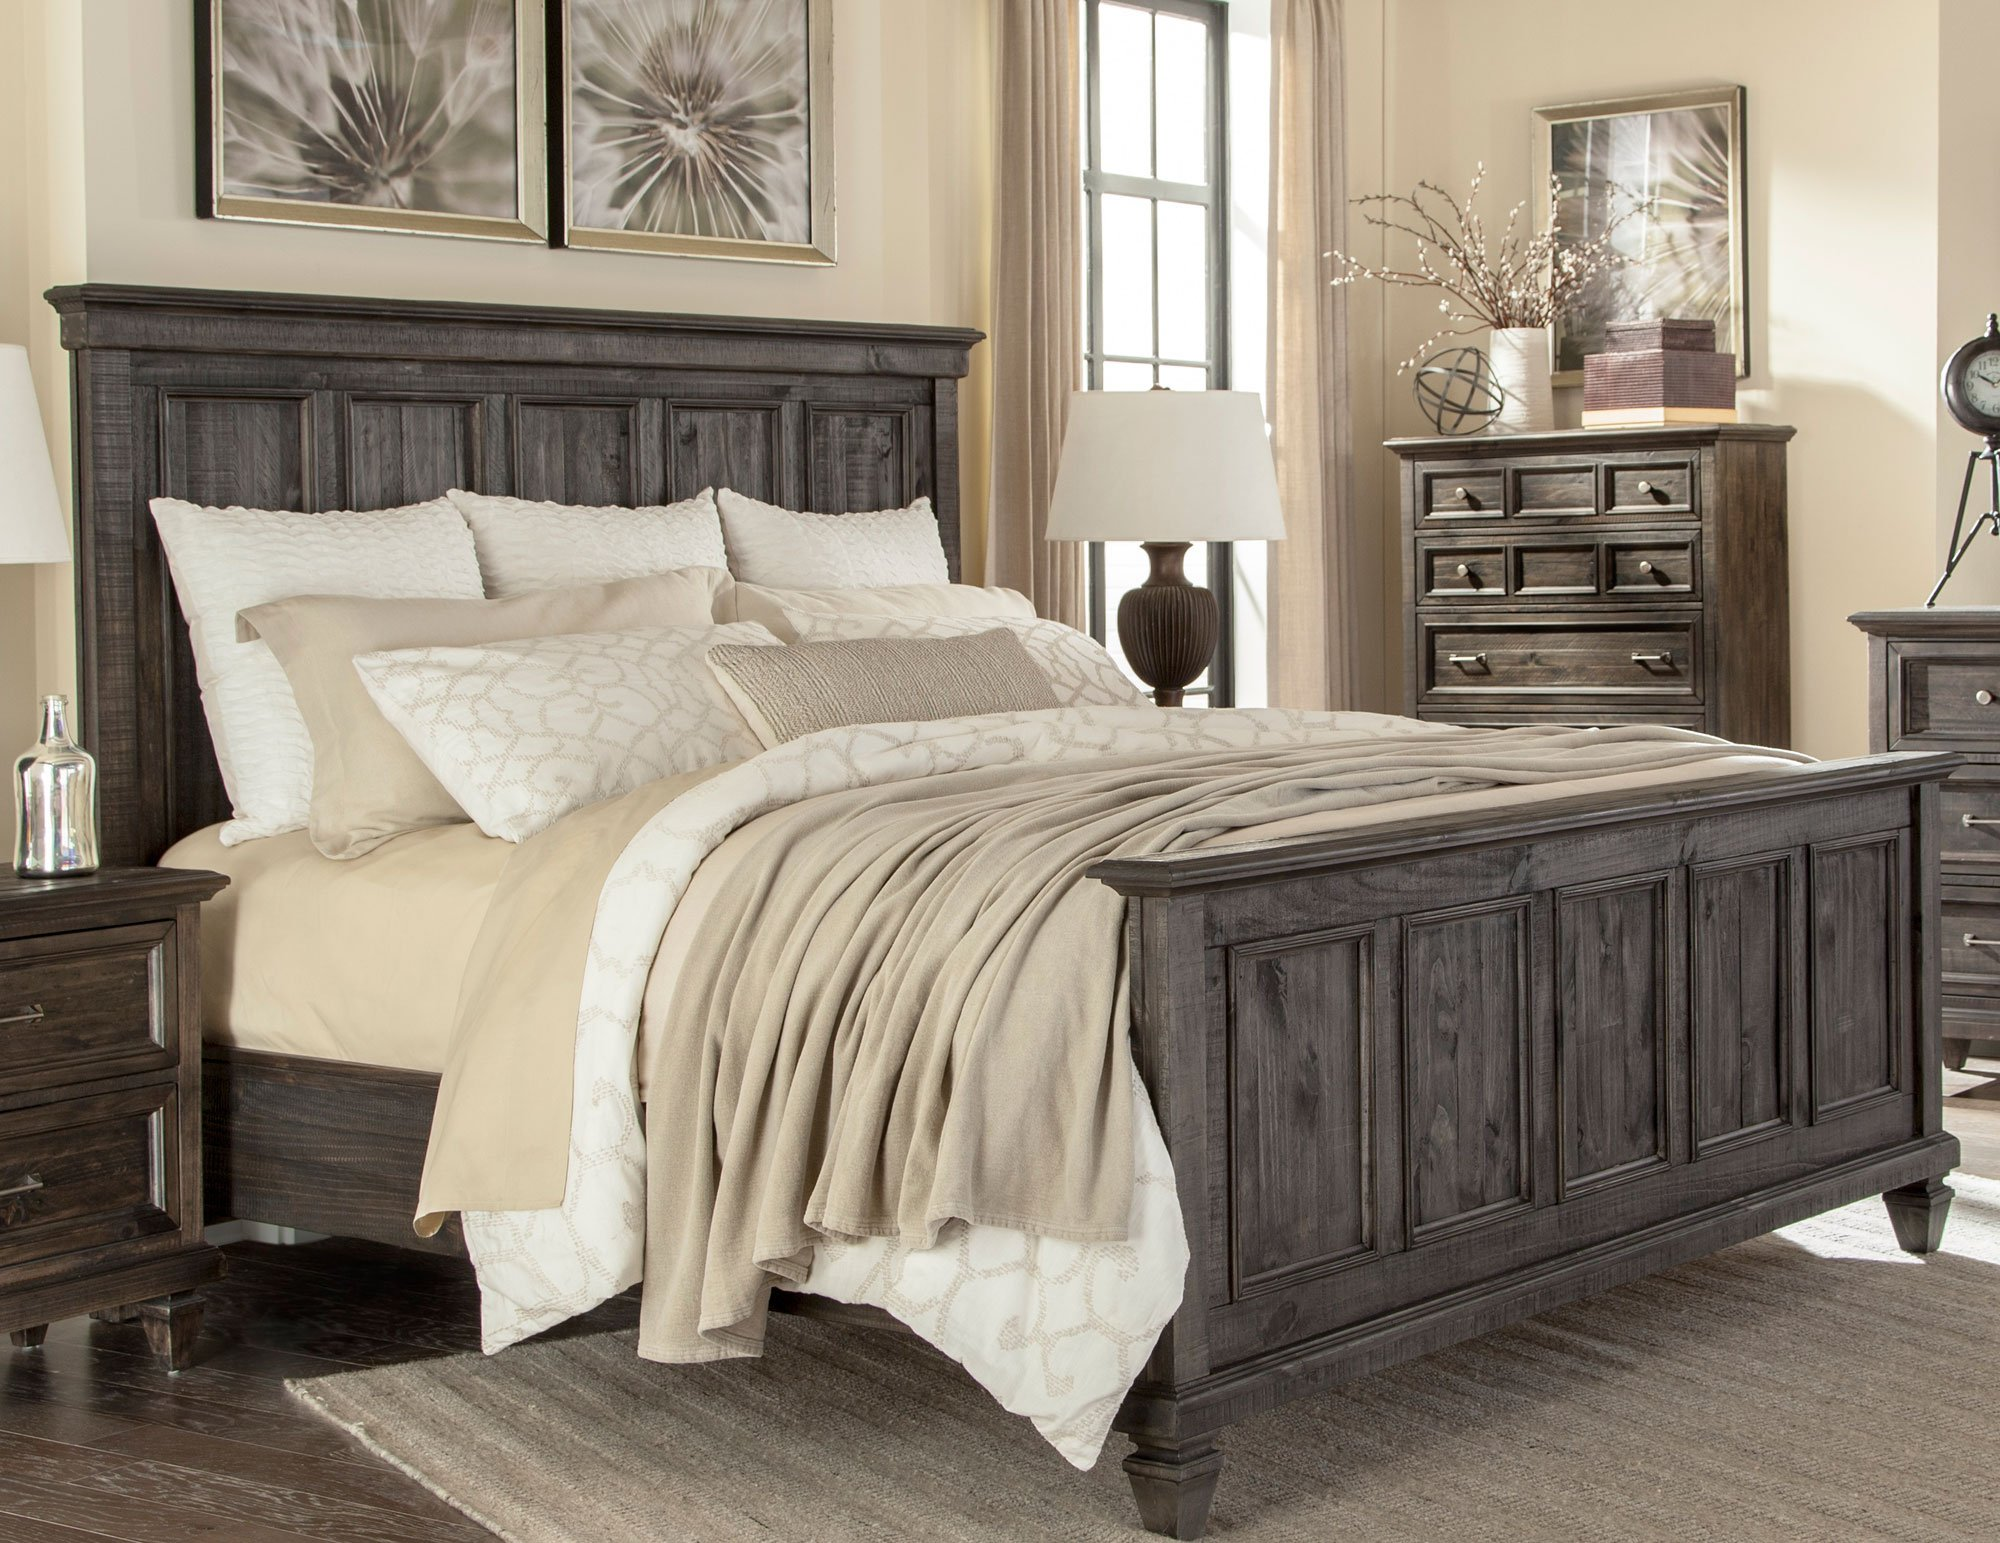 Charcoal gray 6 piece cal king bedroom set calistoga - California king bedroom furniture ...